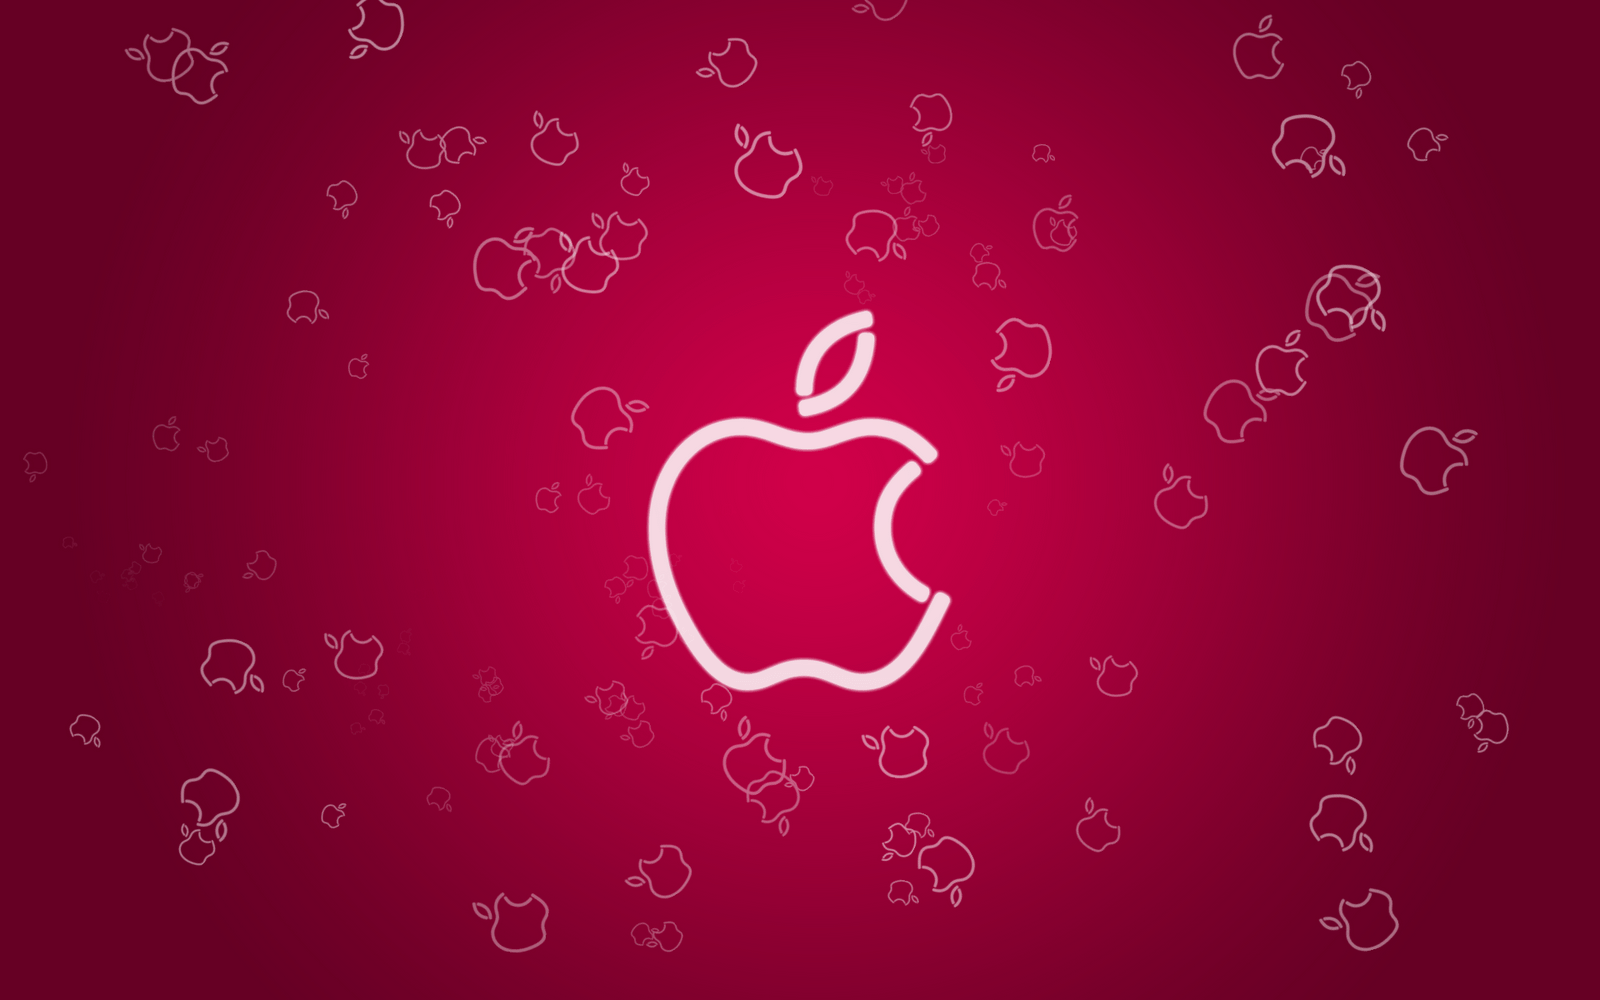 red apple logo wallpapers wallpaper cave